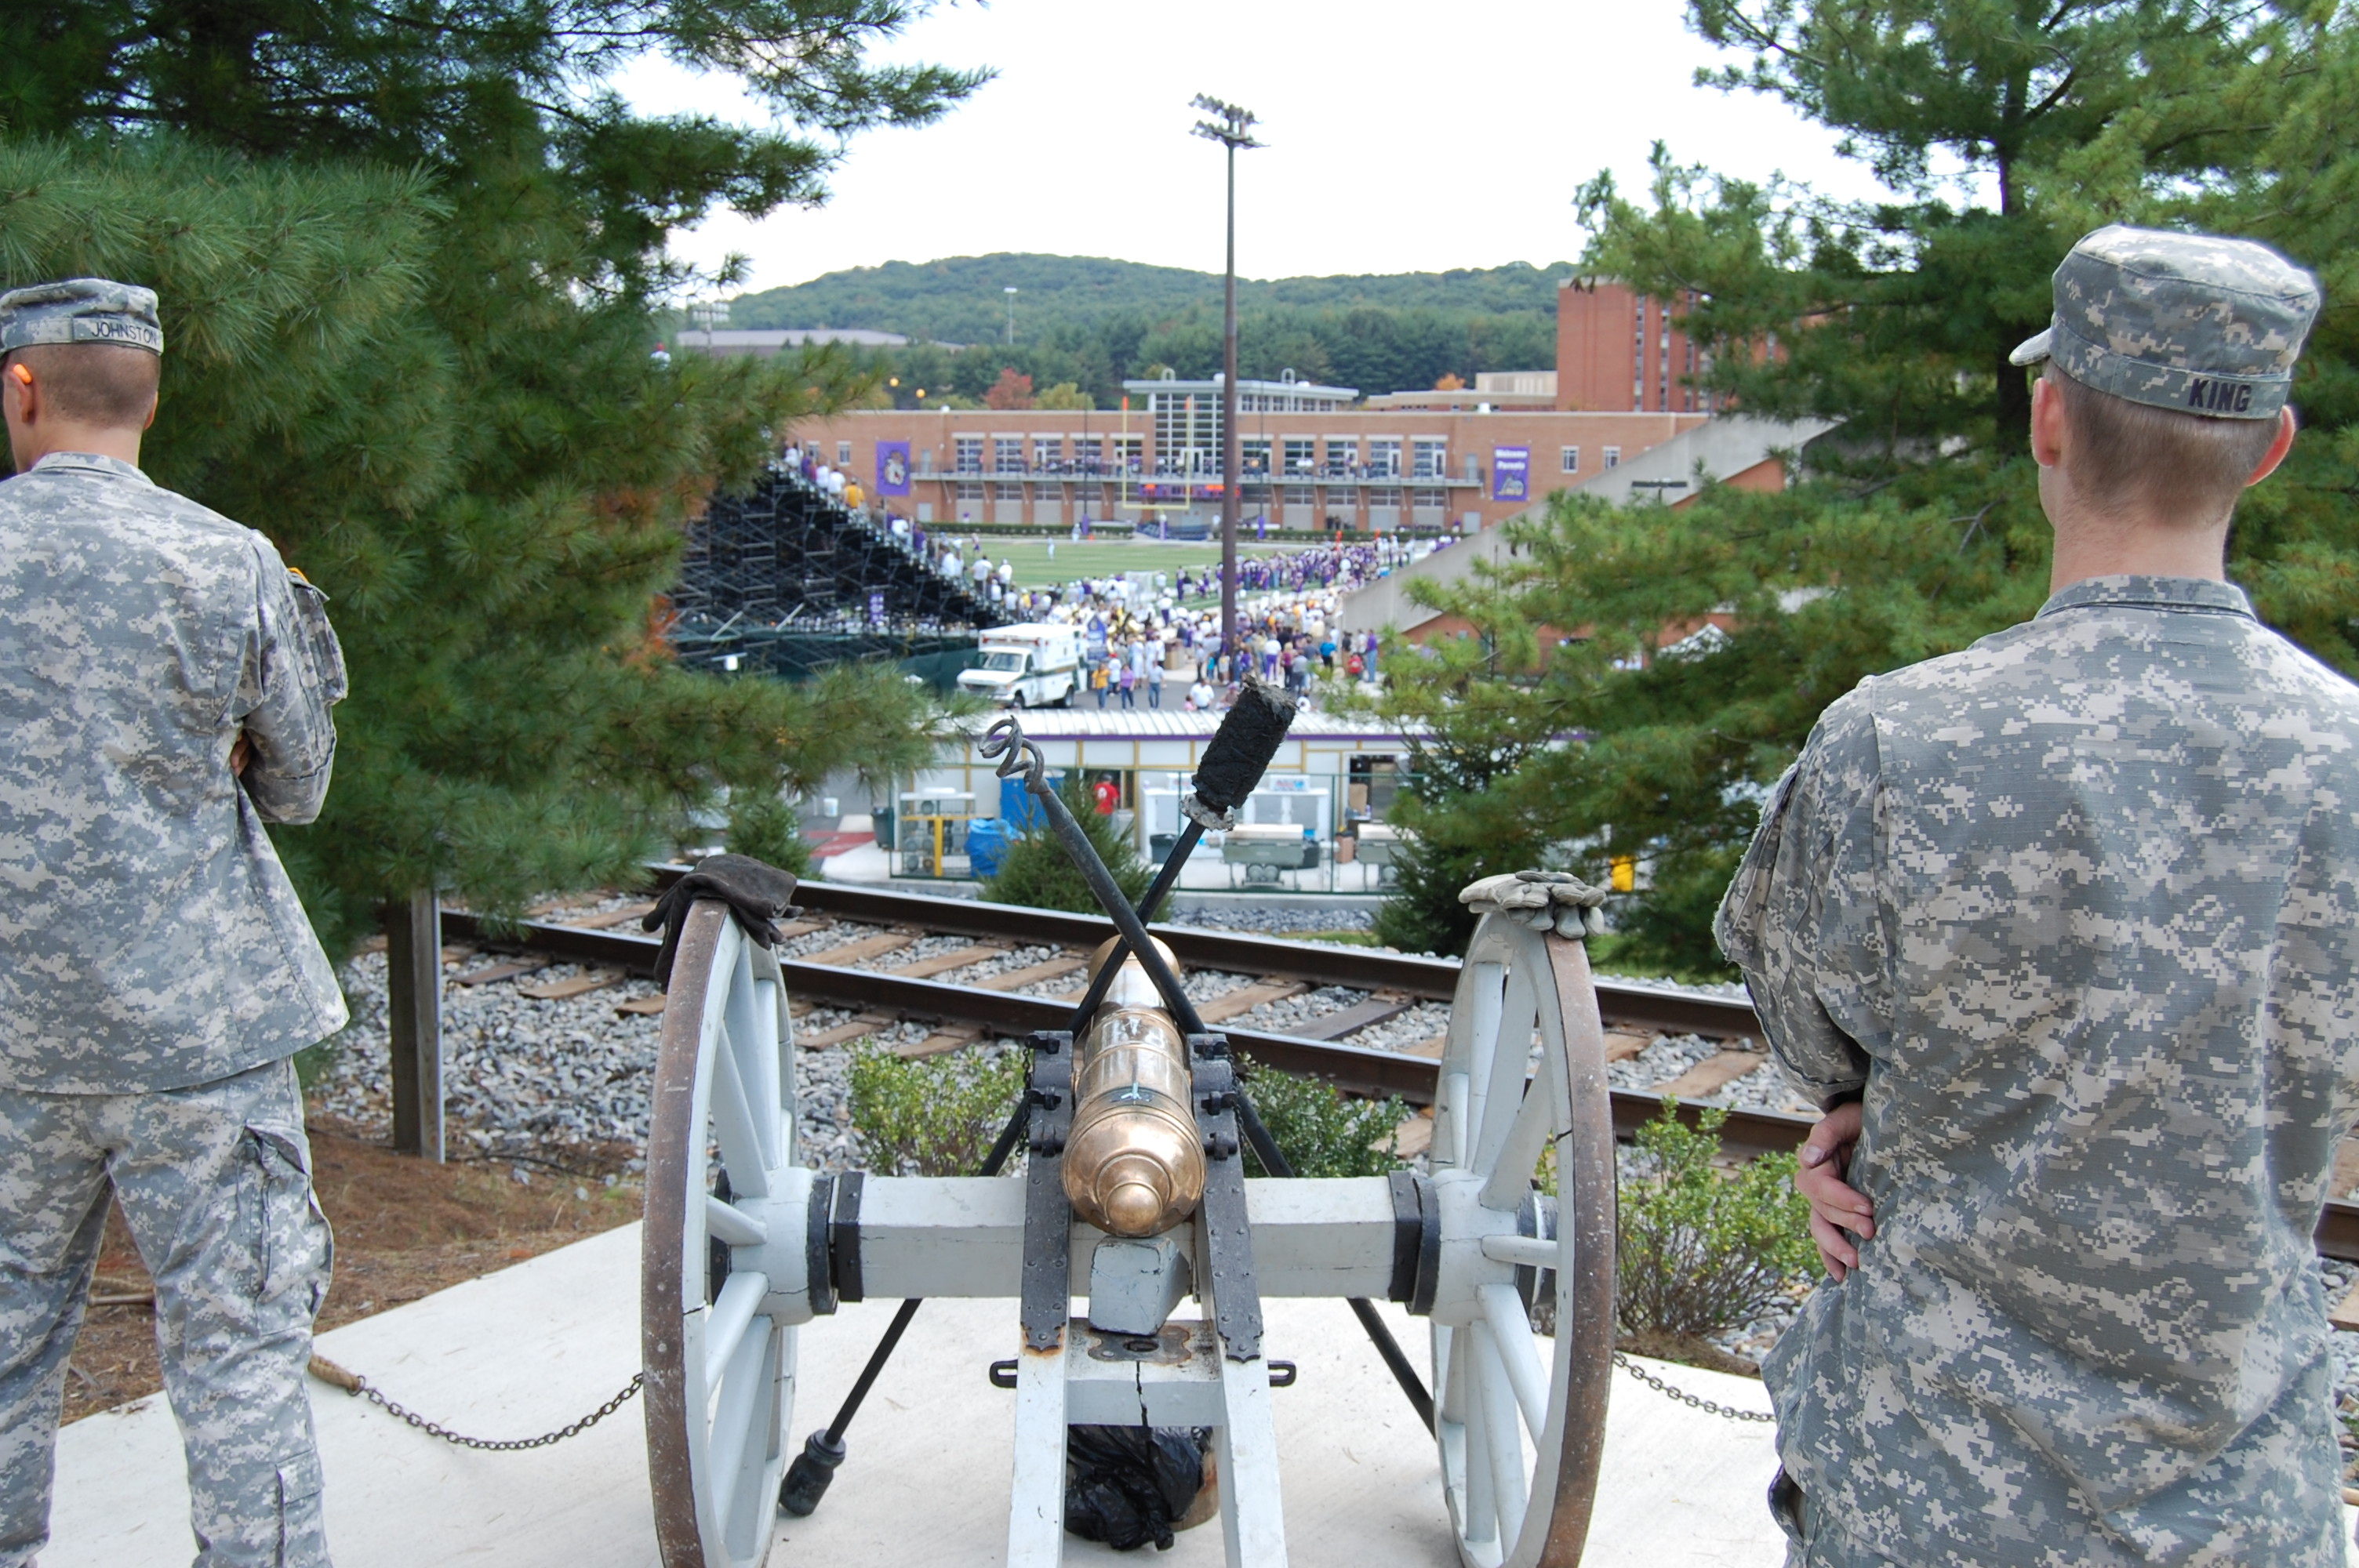 james madison university military science rotc cannon over looking stadium jpg